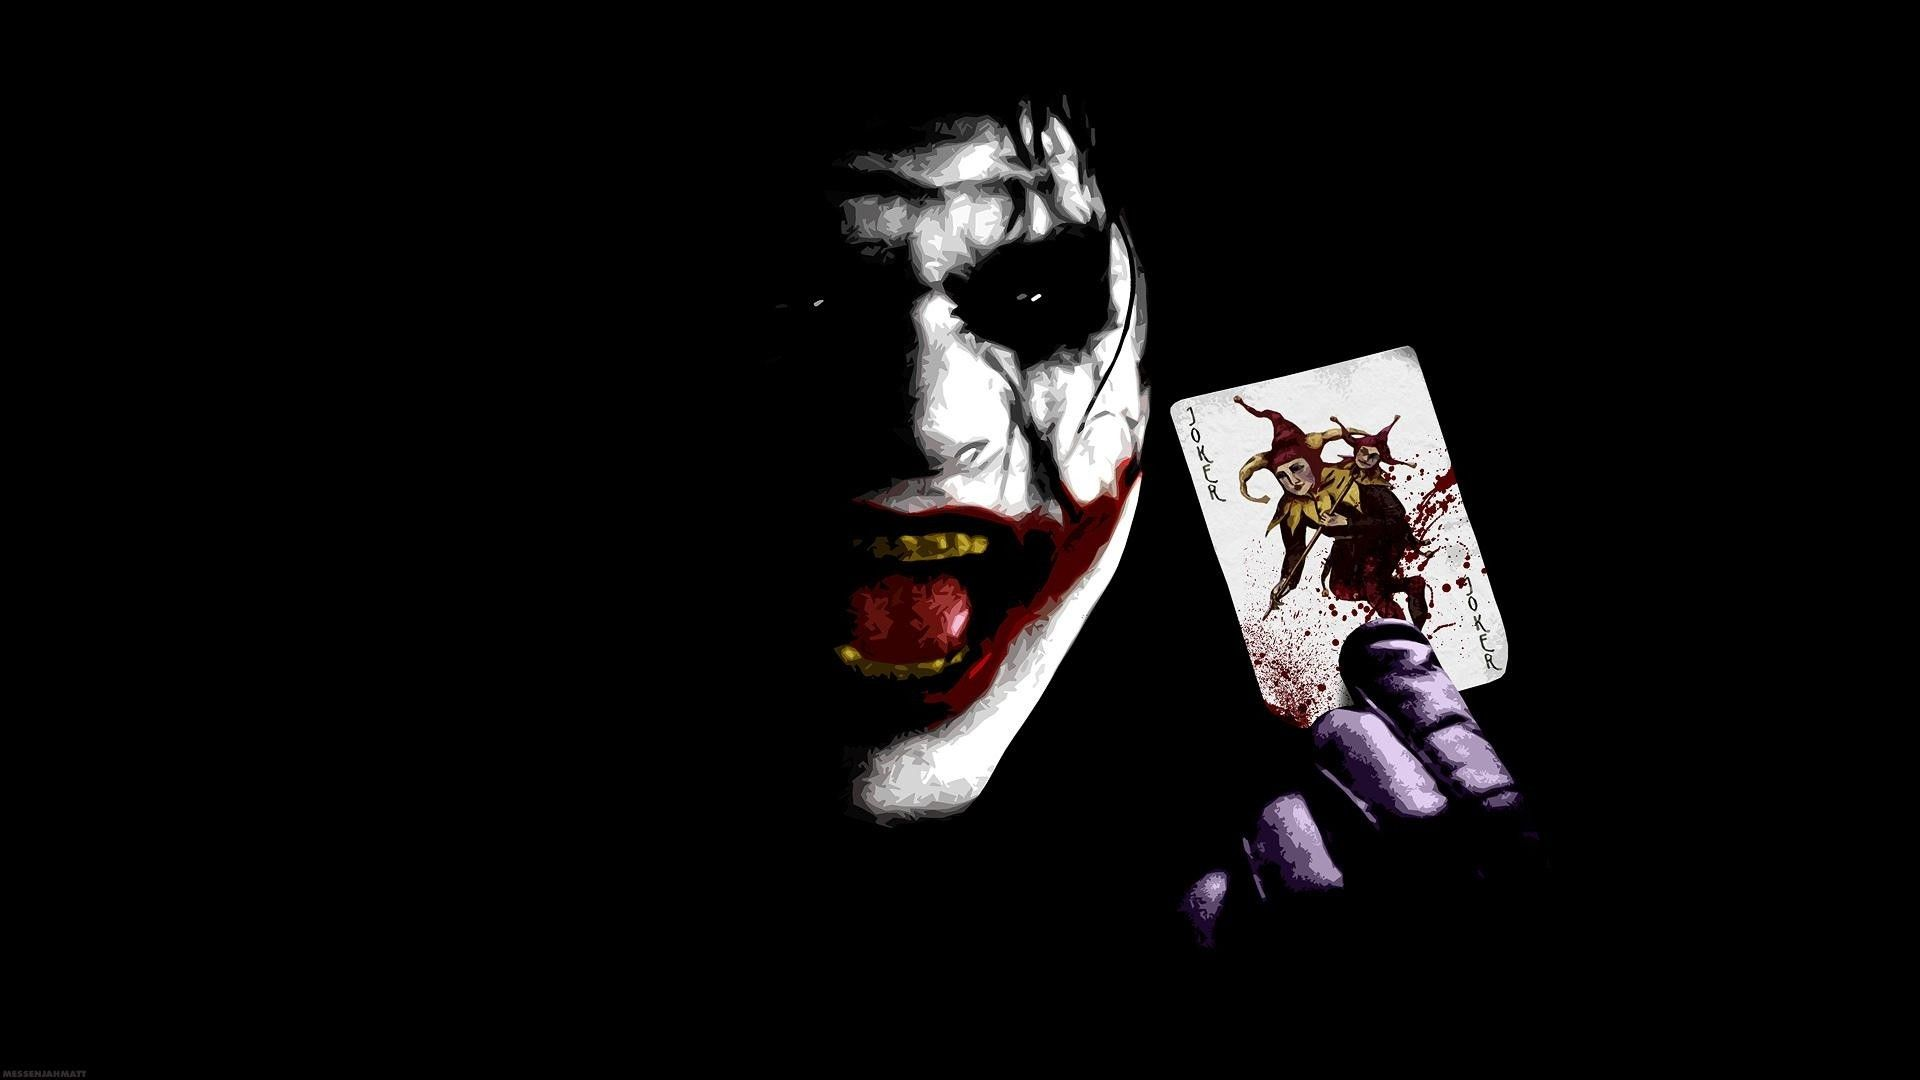 Pin By Fontaxo Dadang On Wefox In 2019 Joker Wallpapers Batman